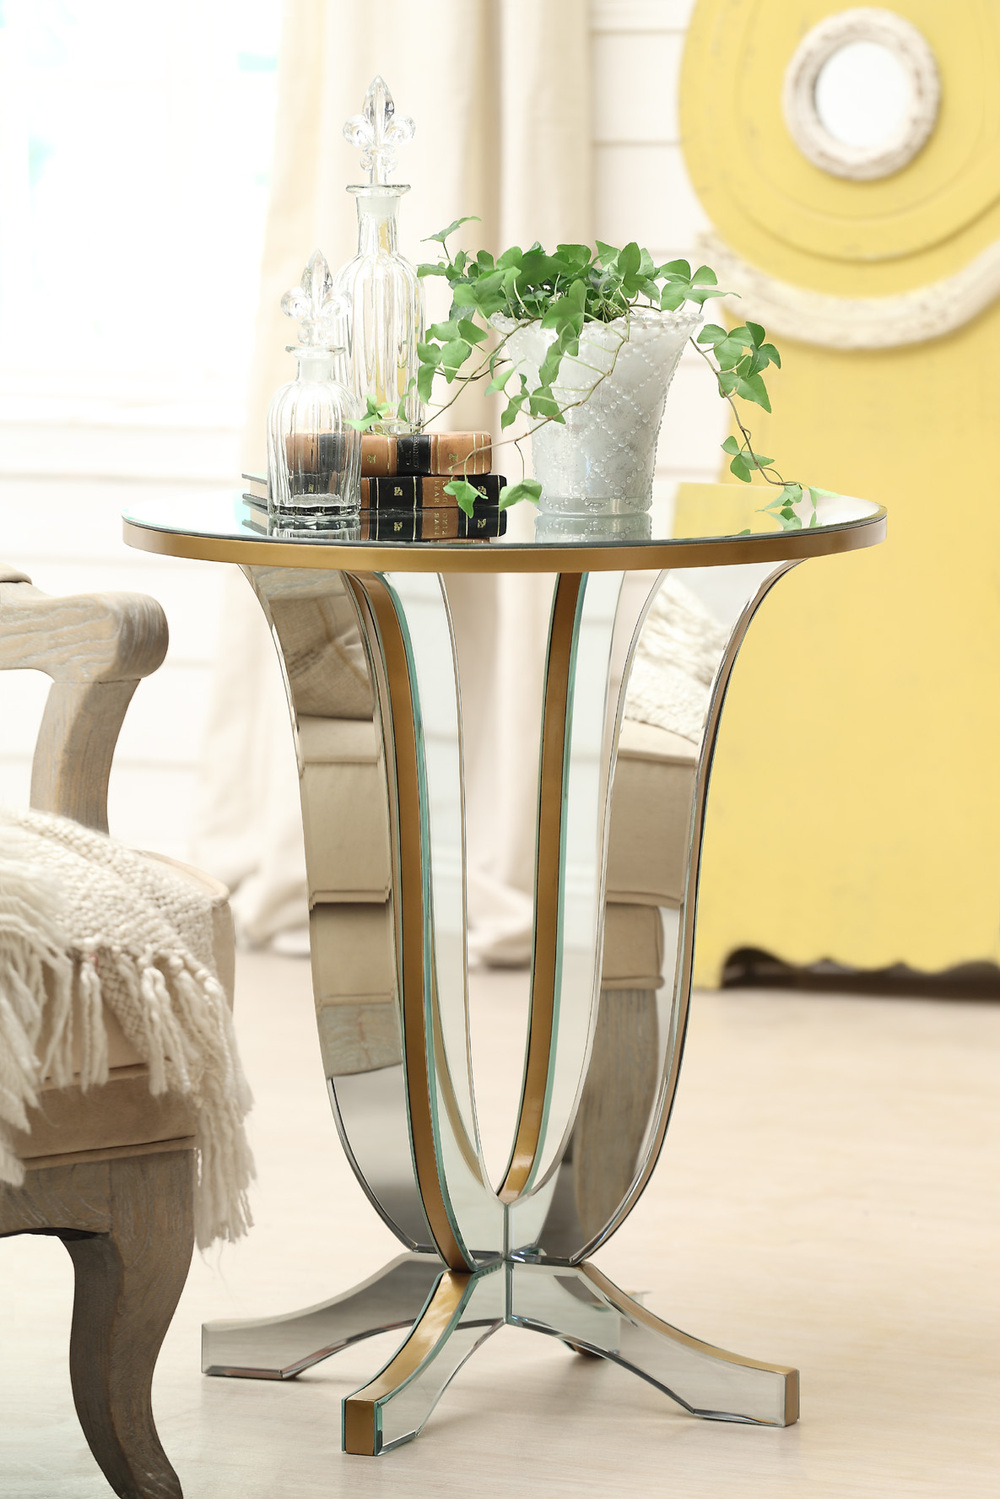 astonishing small accent tables for living room table gold furniture modern kijiji white glass antique decorative target round outdoor full size mersman side bedside unit best